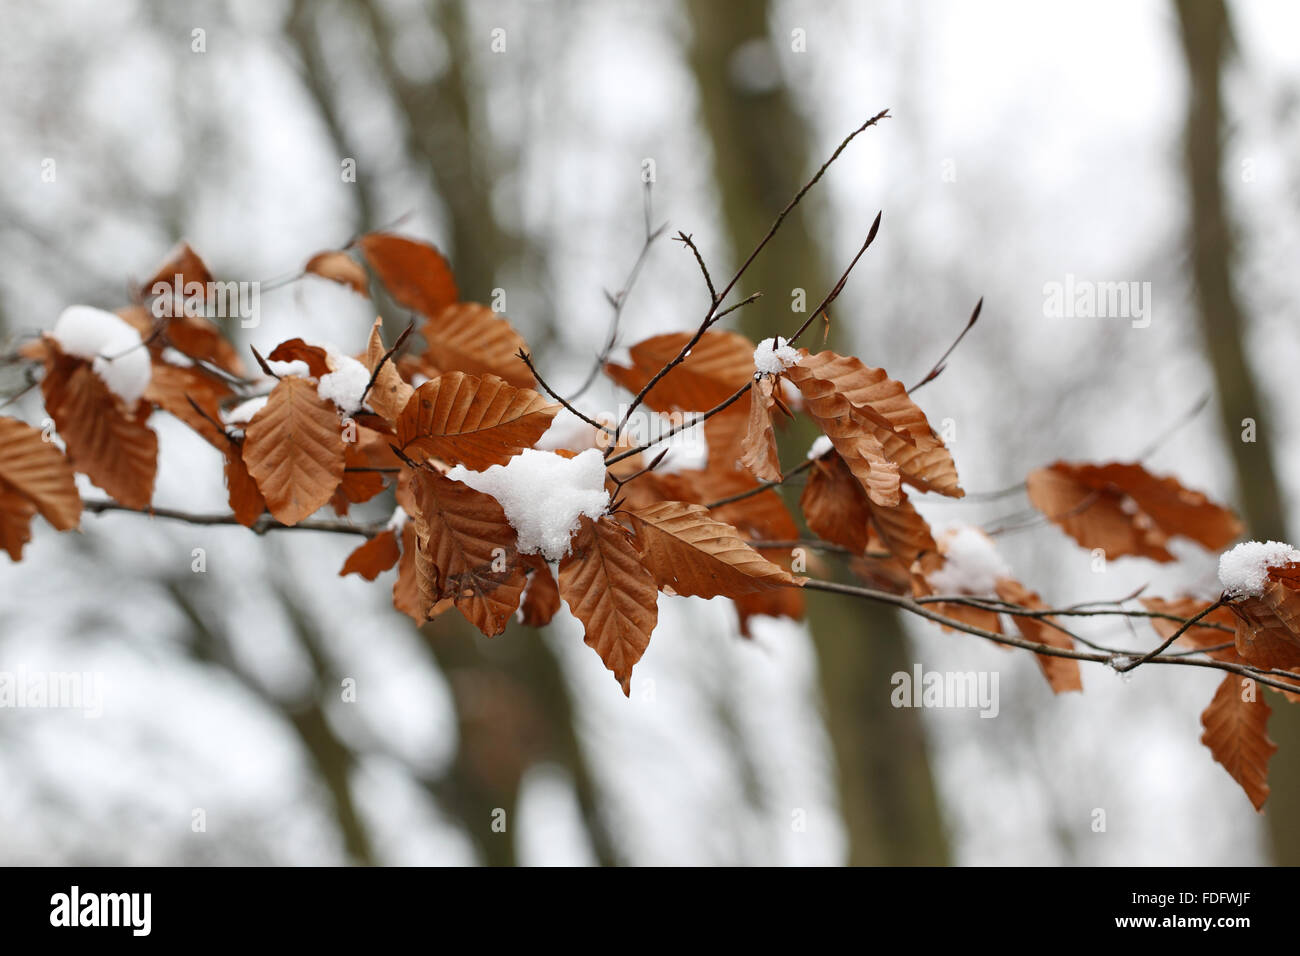 birch leaves in snow - Stock Image